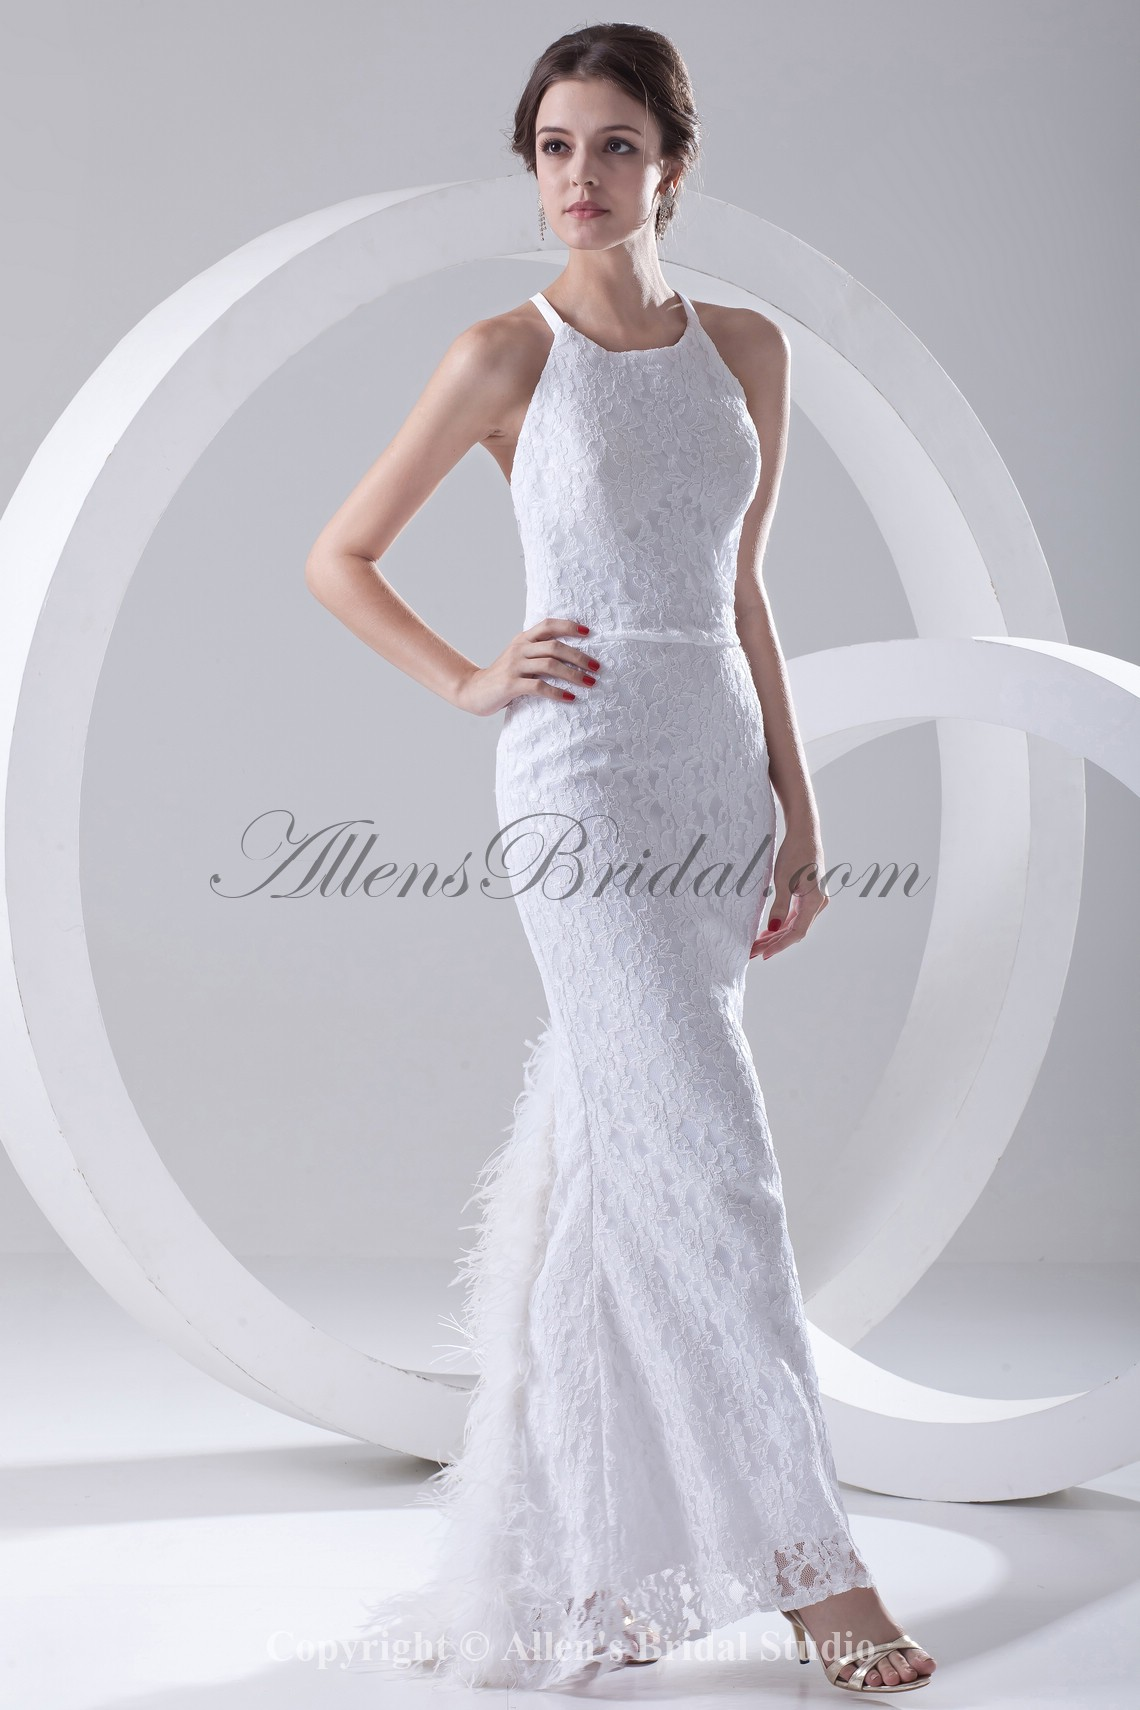 /224-1790/lace-jewel-neckline-sheath-floor-length-feather-prom-dress.jpg